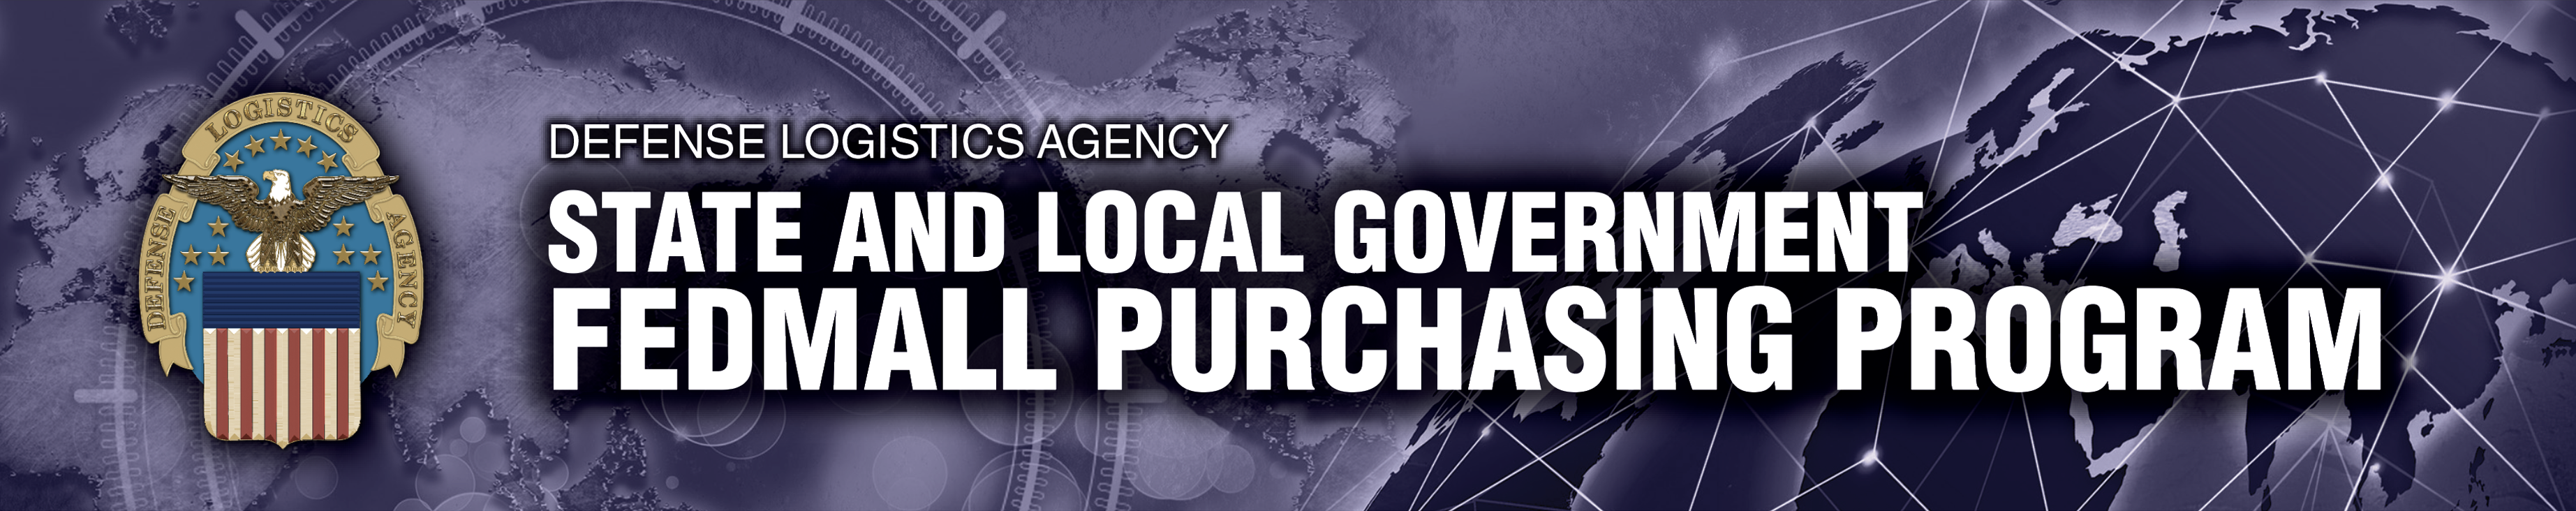 Banner text says Defense Logistics Agency State and Local Government Federal Purchasing Program